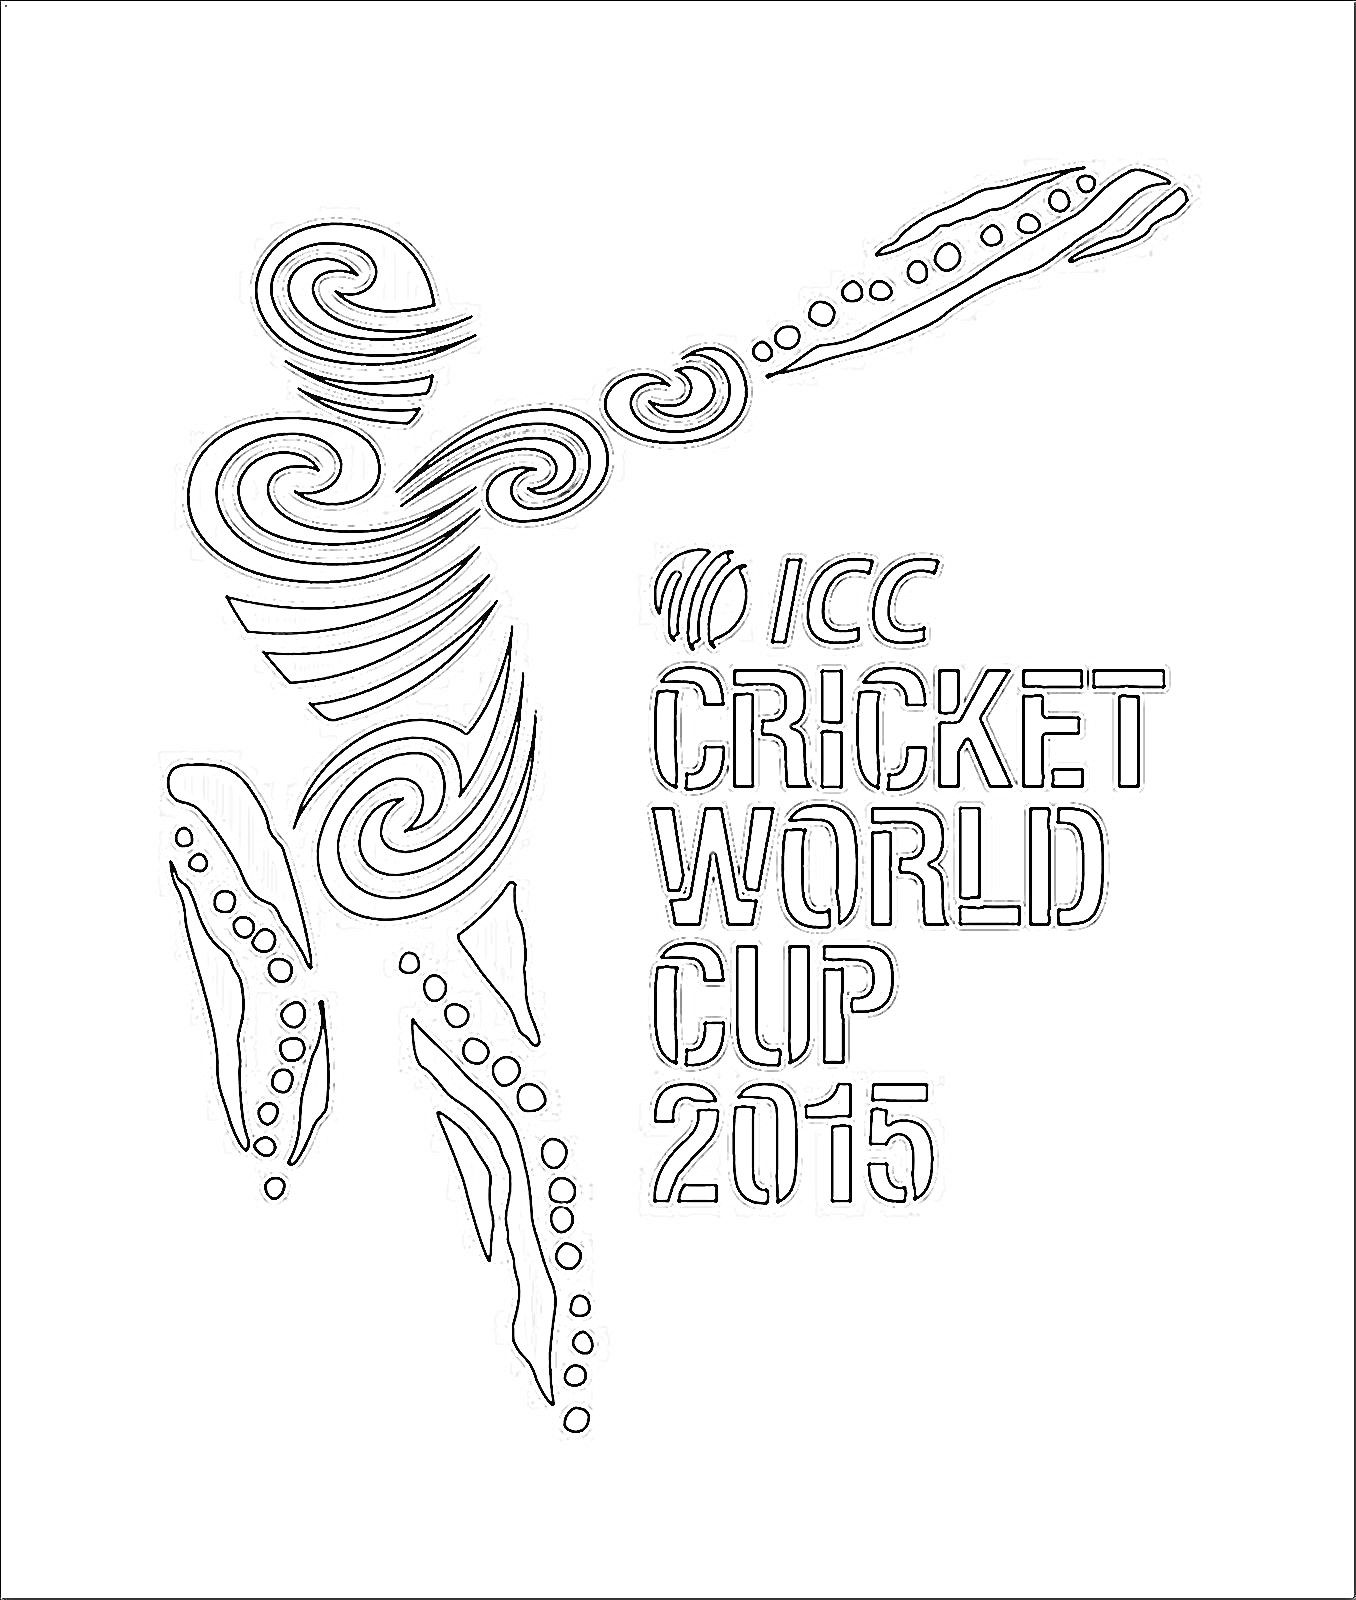 cricket colouring in pages - Google Search | Cricket | Pinterest